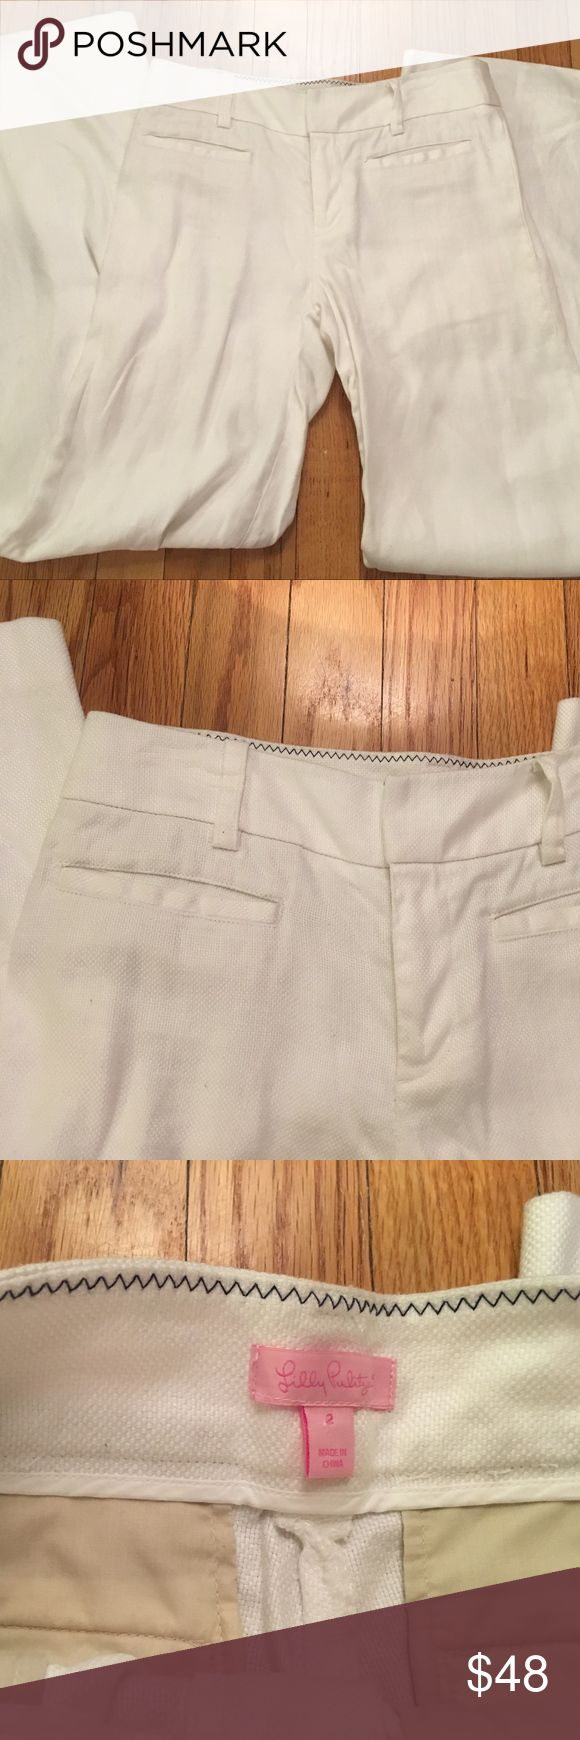 Lilly Pulitzer white linen trousers size 2 ❤️ Cute and practical! Lilly Pulitzer white linen trousers in size 2. Wide leg cut. Two functional front pockets and two functional pockets in the back. Waist measurement is just shy of 15 inches. Inseam approx. 31 inches. 73% linen, 27% cotton. Made in China. Machine wash cold. Excellent, gently preloved condition! Some very minor fading/signs of wear on the very bottoms of the legs (see last picture). These pants look great with a belt! The…